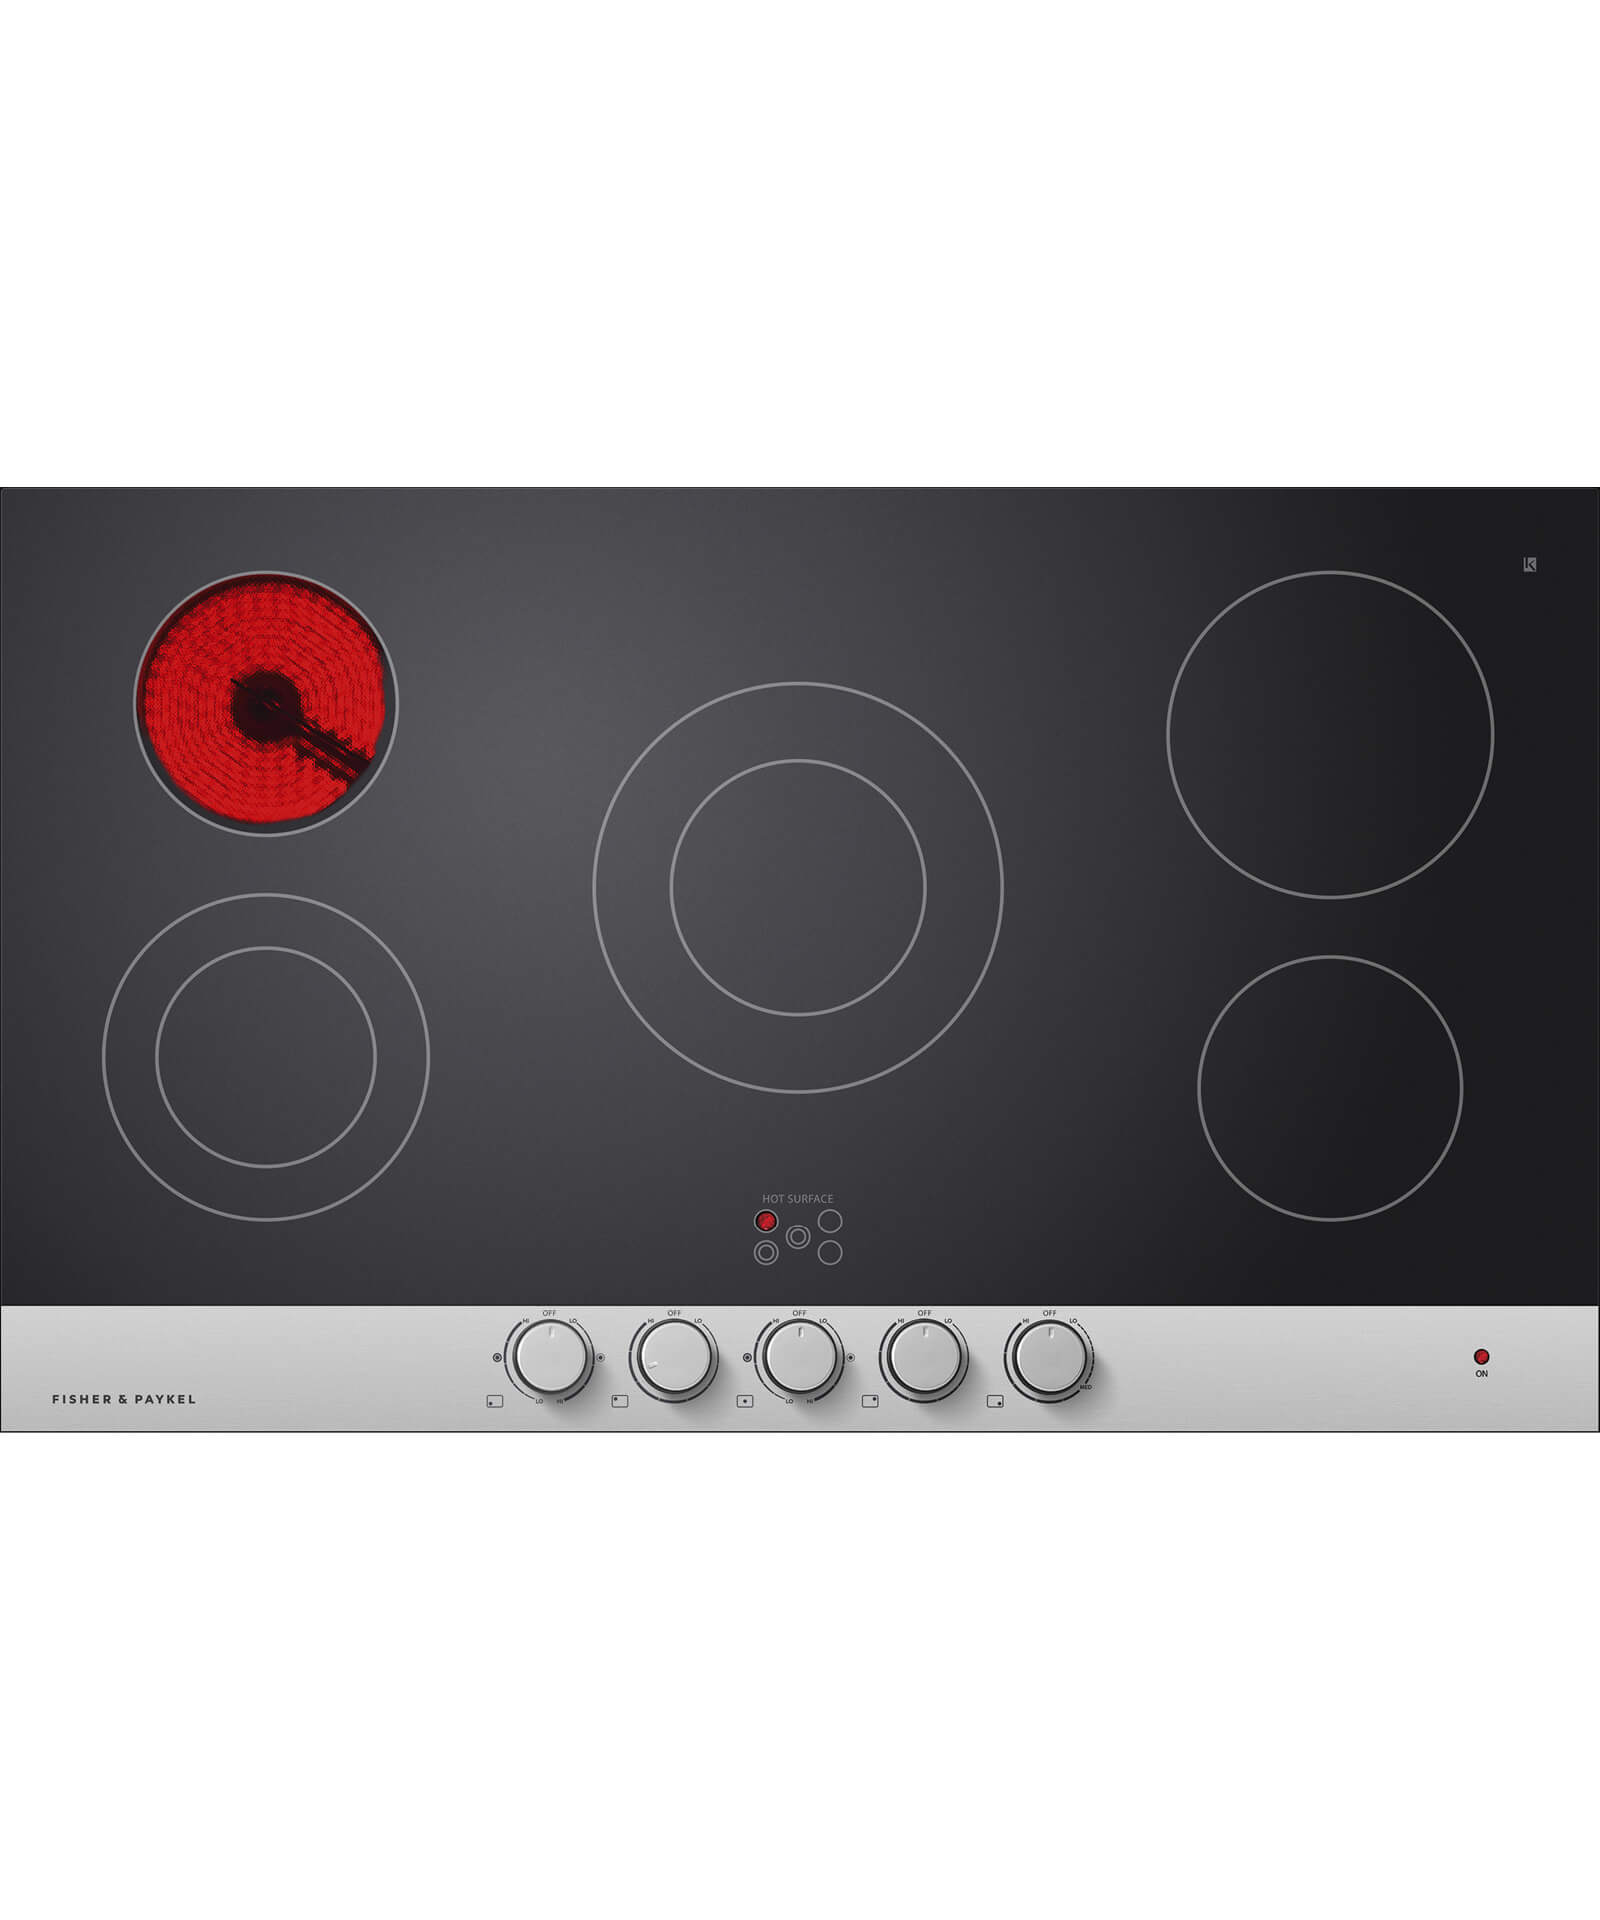 Cheap Electric Cooktops Ce365dbx1 N Fisher Paykel 36